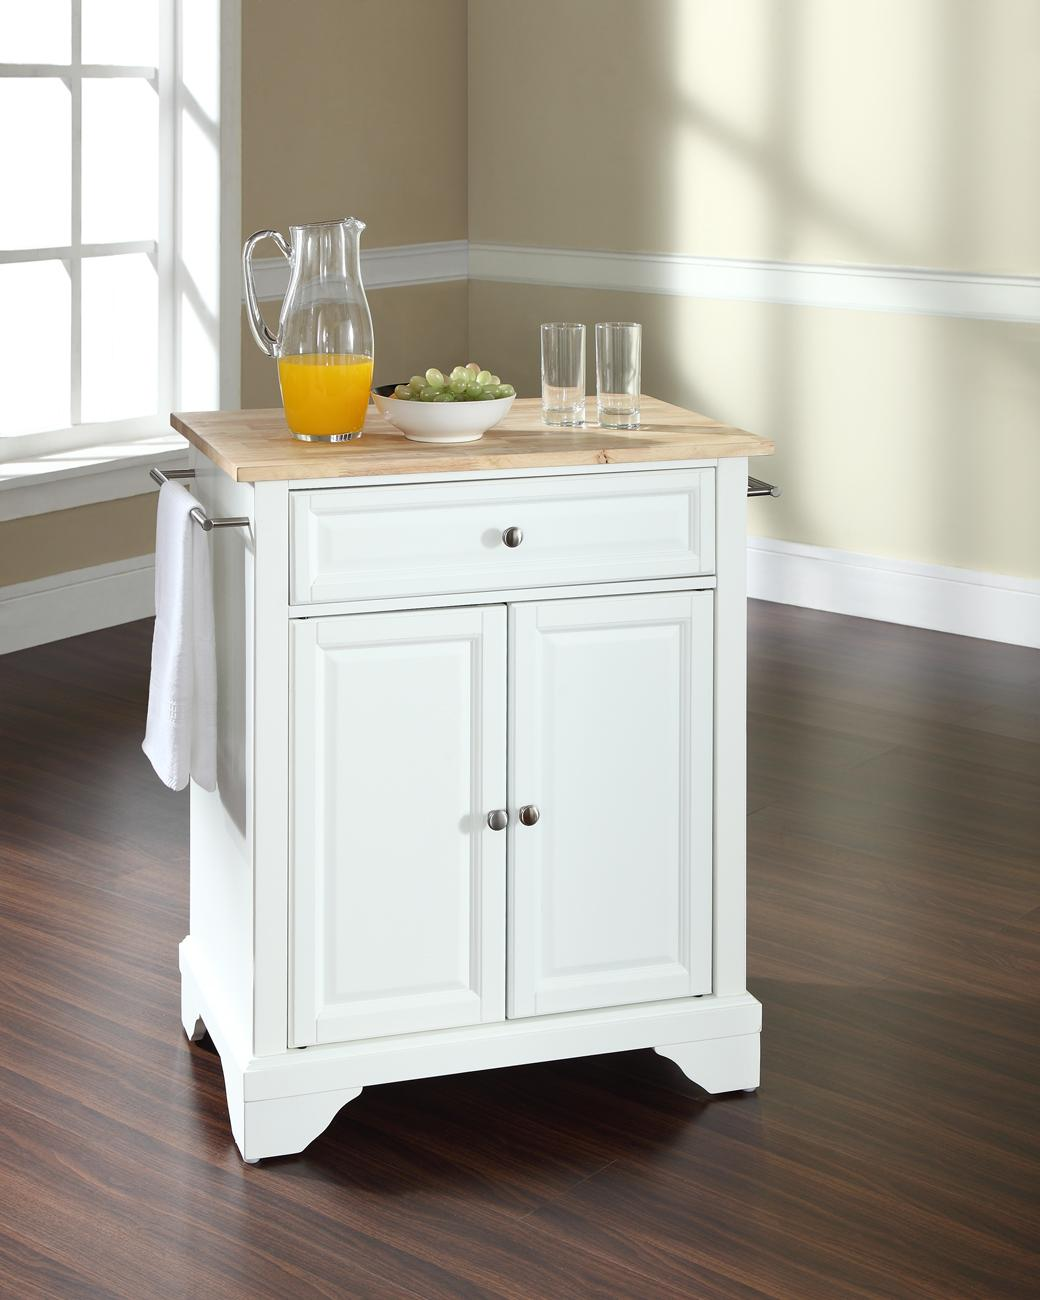 ... kitchen furniture kitchen dining room furniture kitchen islands carts